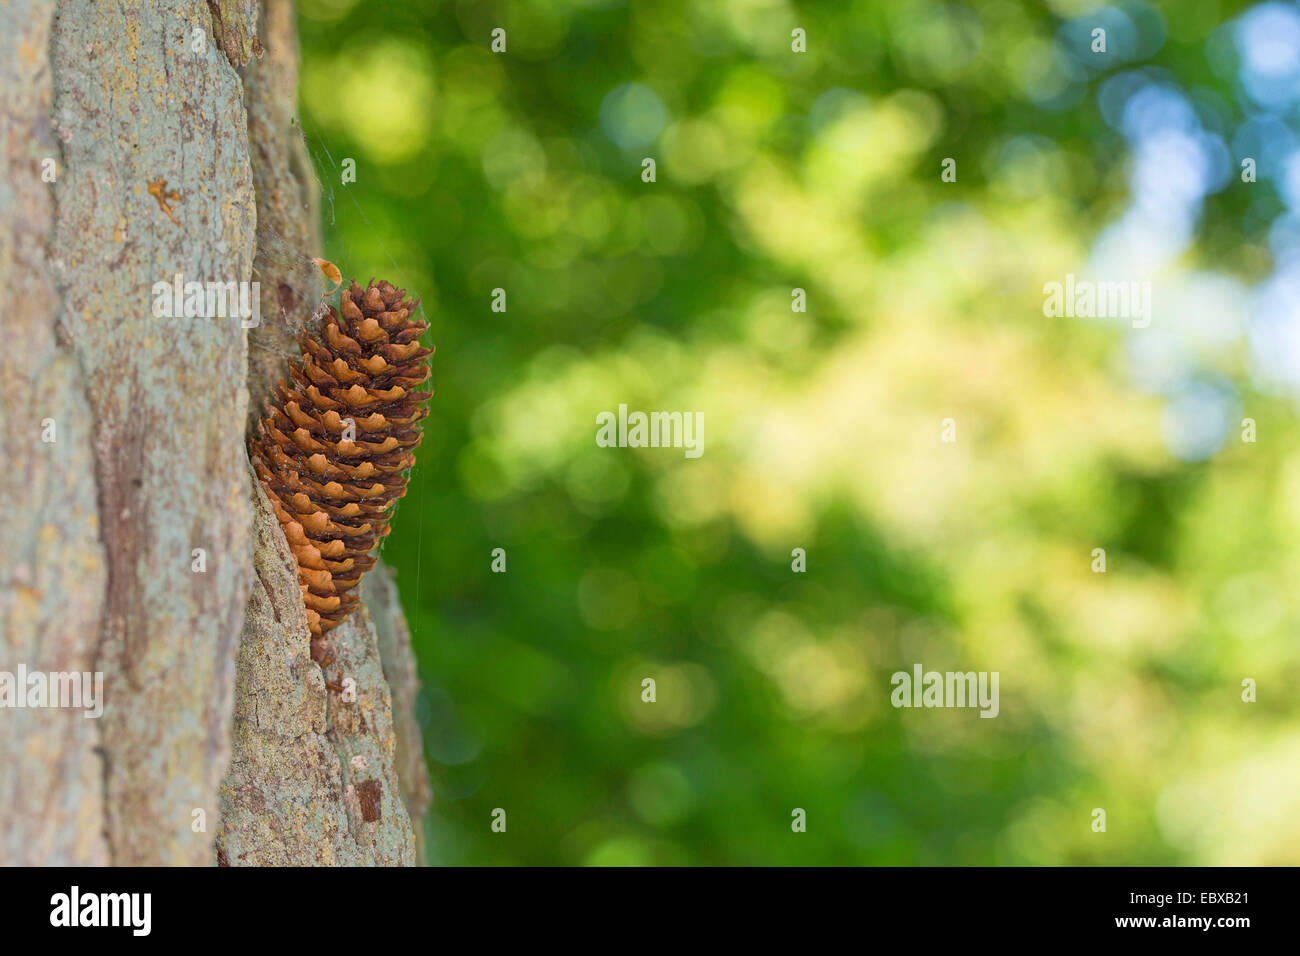 pine-cone wedged in an anvil, Germany - Stock Image